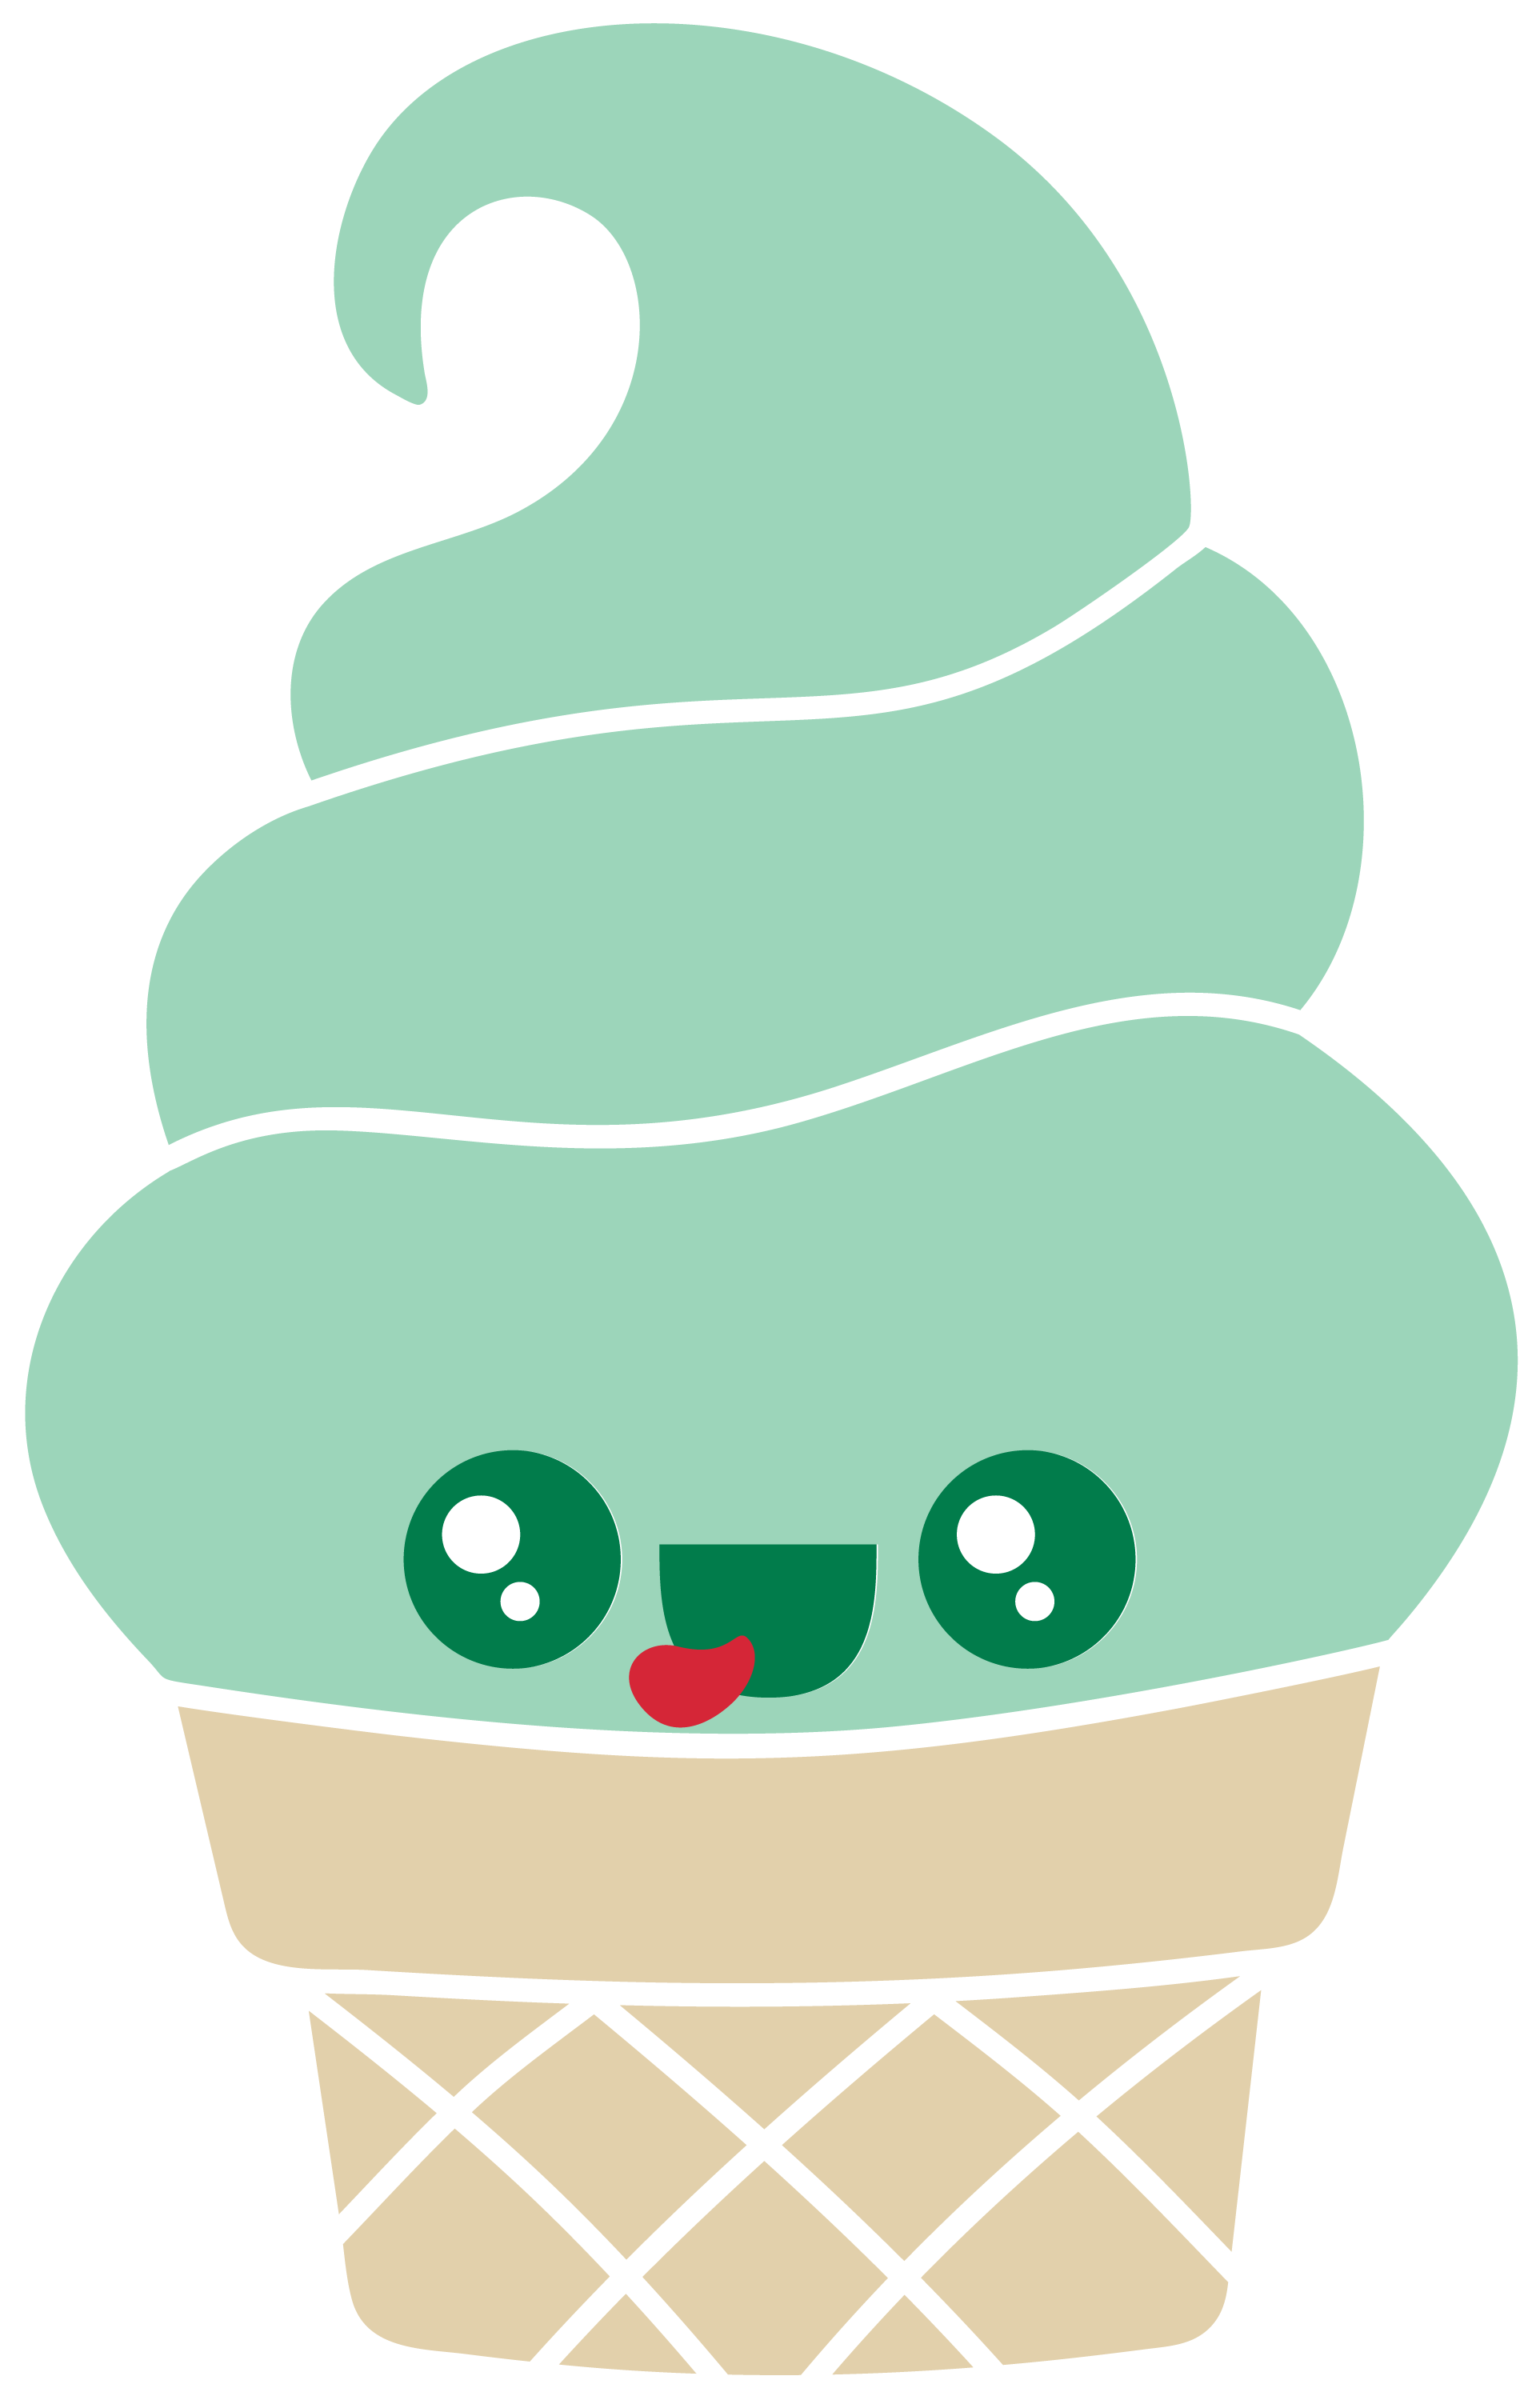 kld-Ice-Cream_V2.png